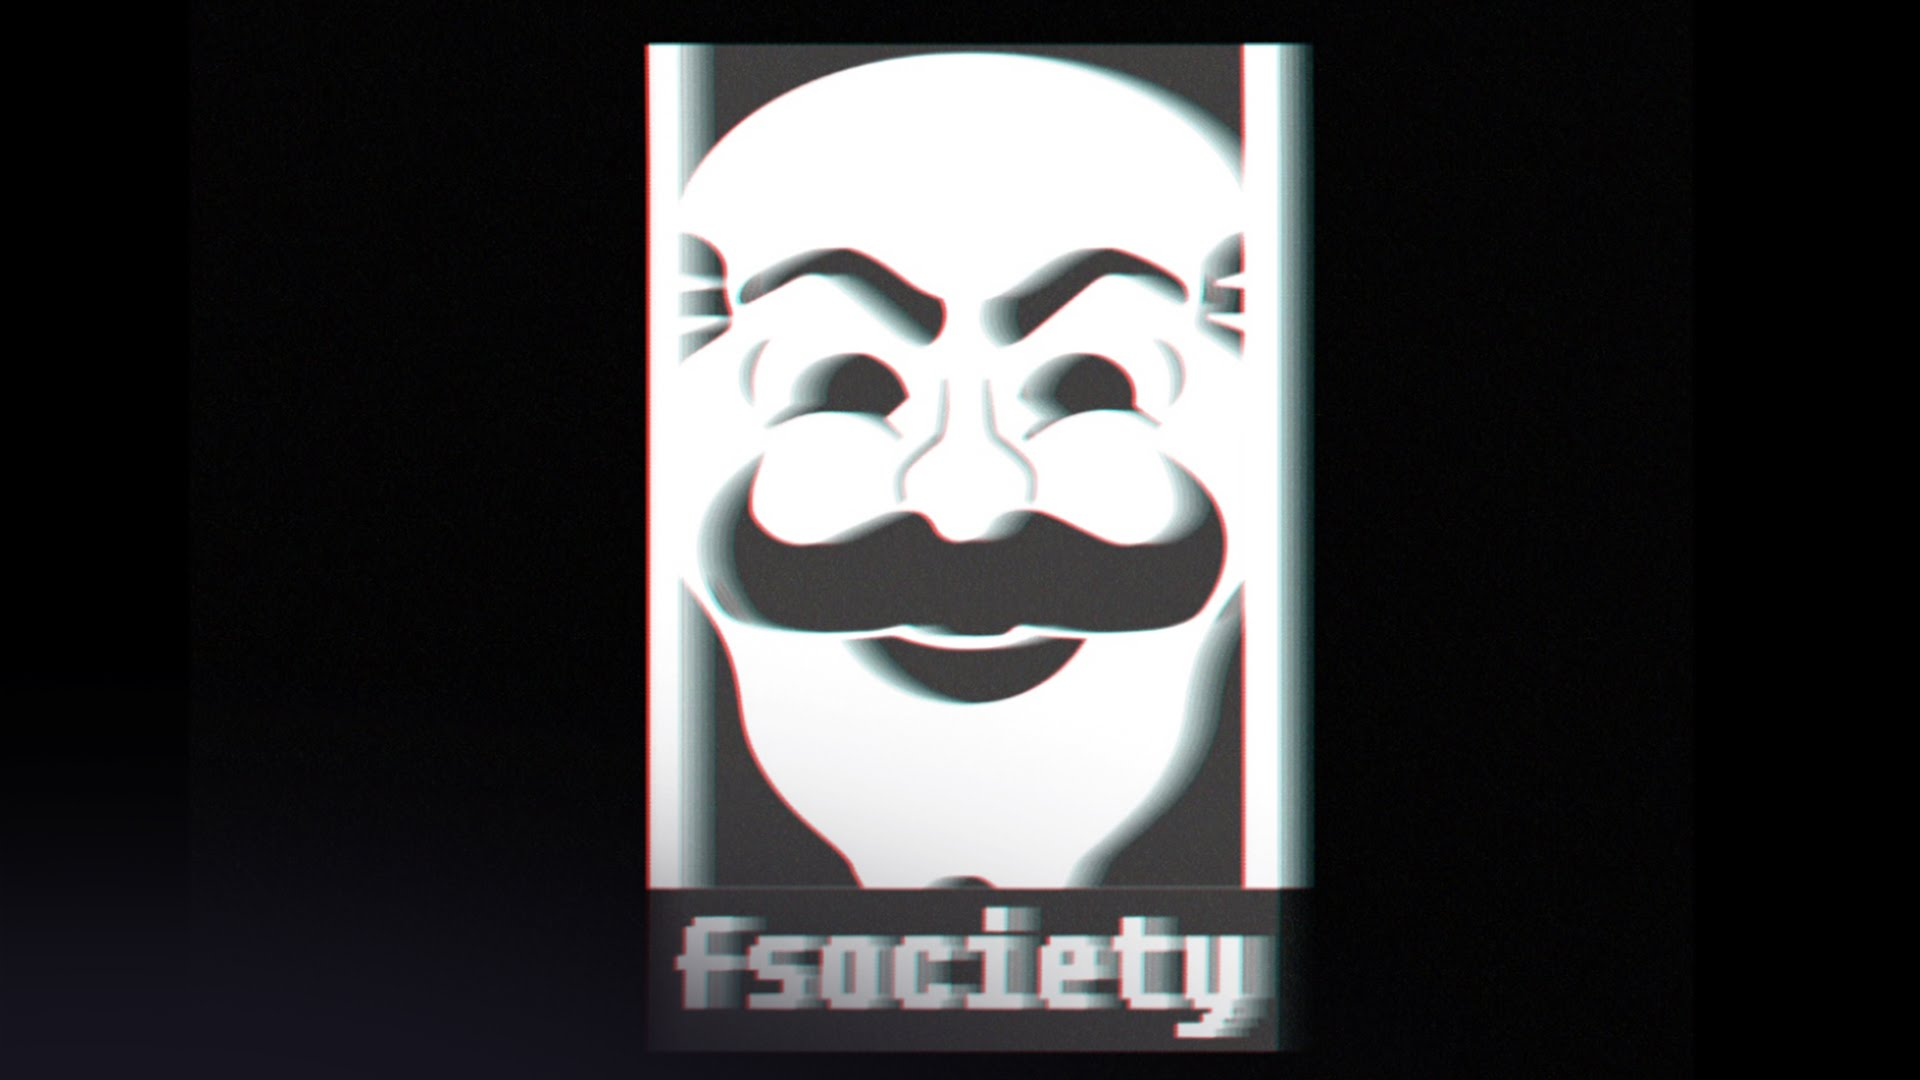 Fsociety The Name Of Group Hackers That Mr Robot Leads 1920x1080